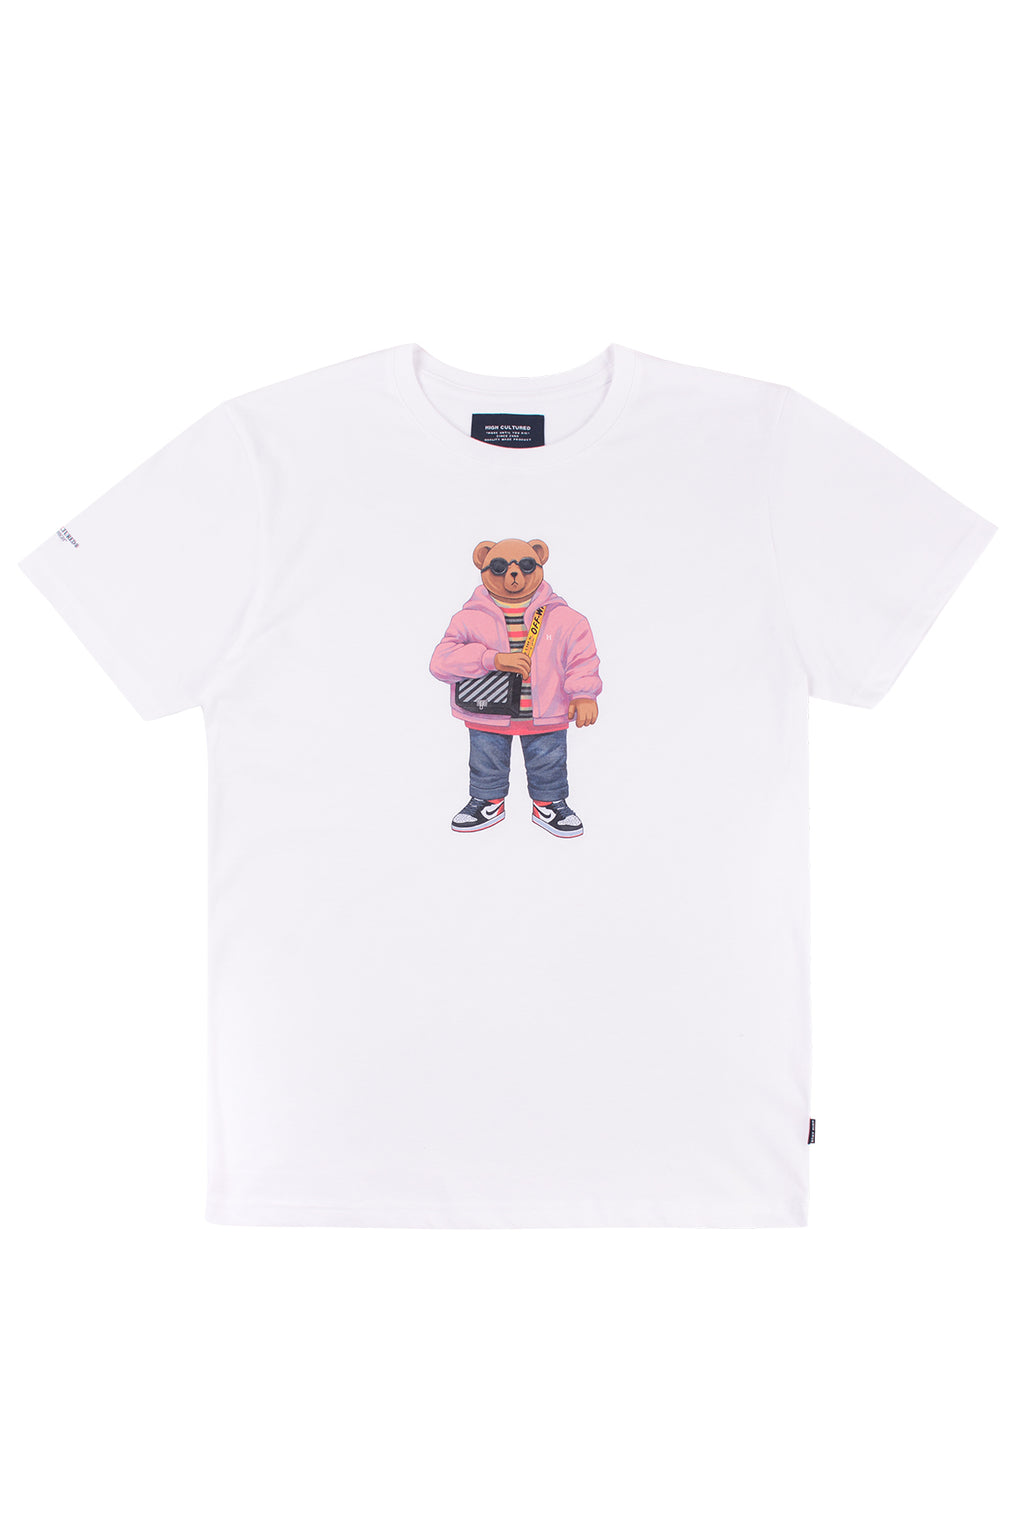 """LUKE, THE BAGGY BEAR"" TEE 